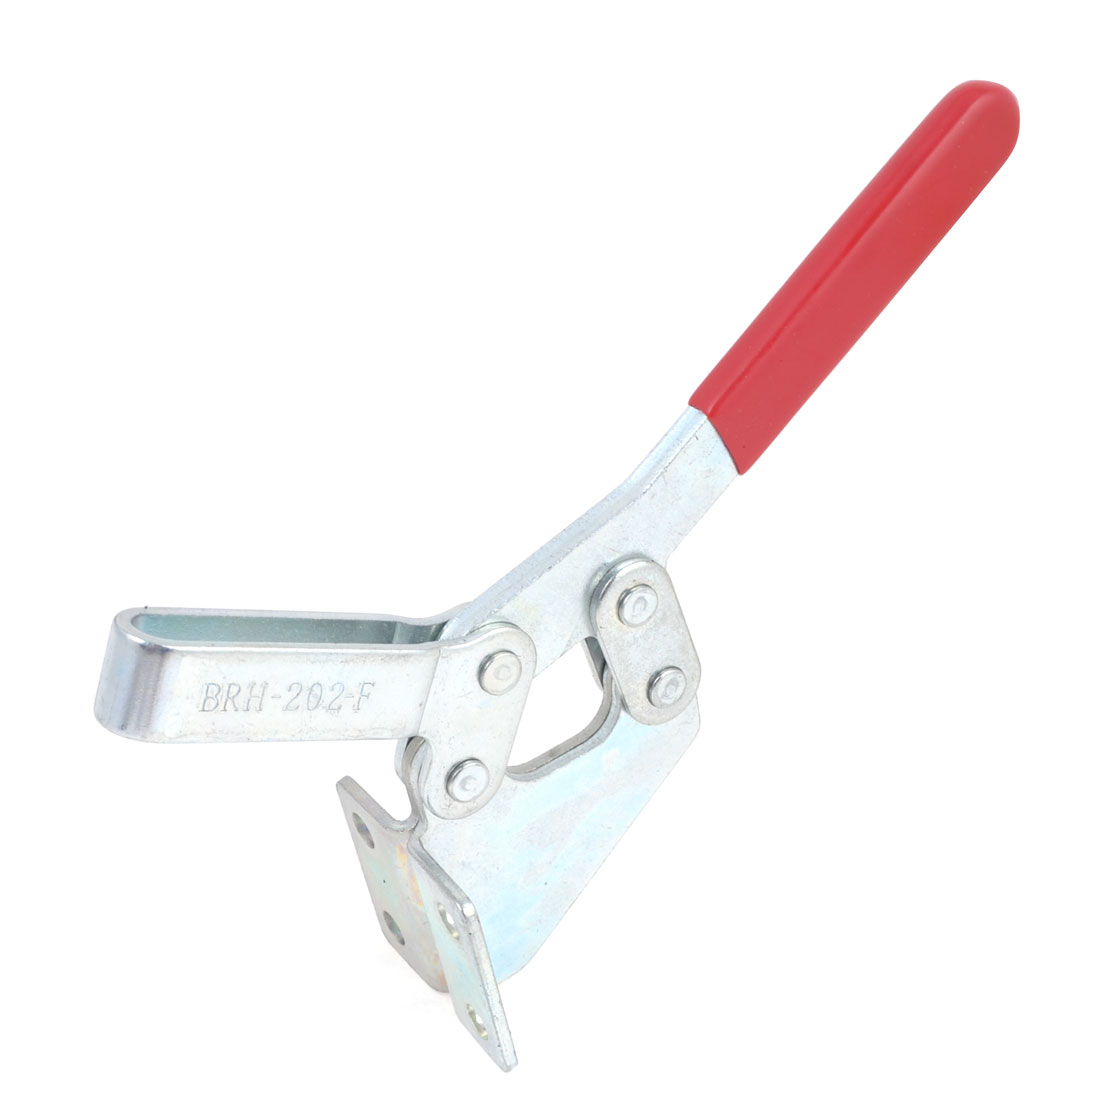 202F 227Kg 500 Lbs Quick Release Holding U Shaped Bar Flange Base Red Straight Handle Horizontal Toggle Clamp